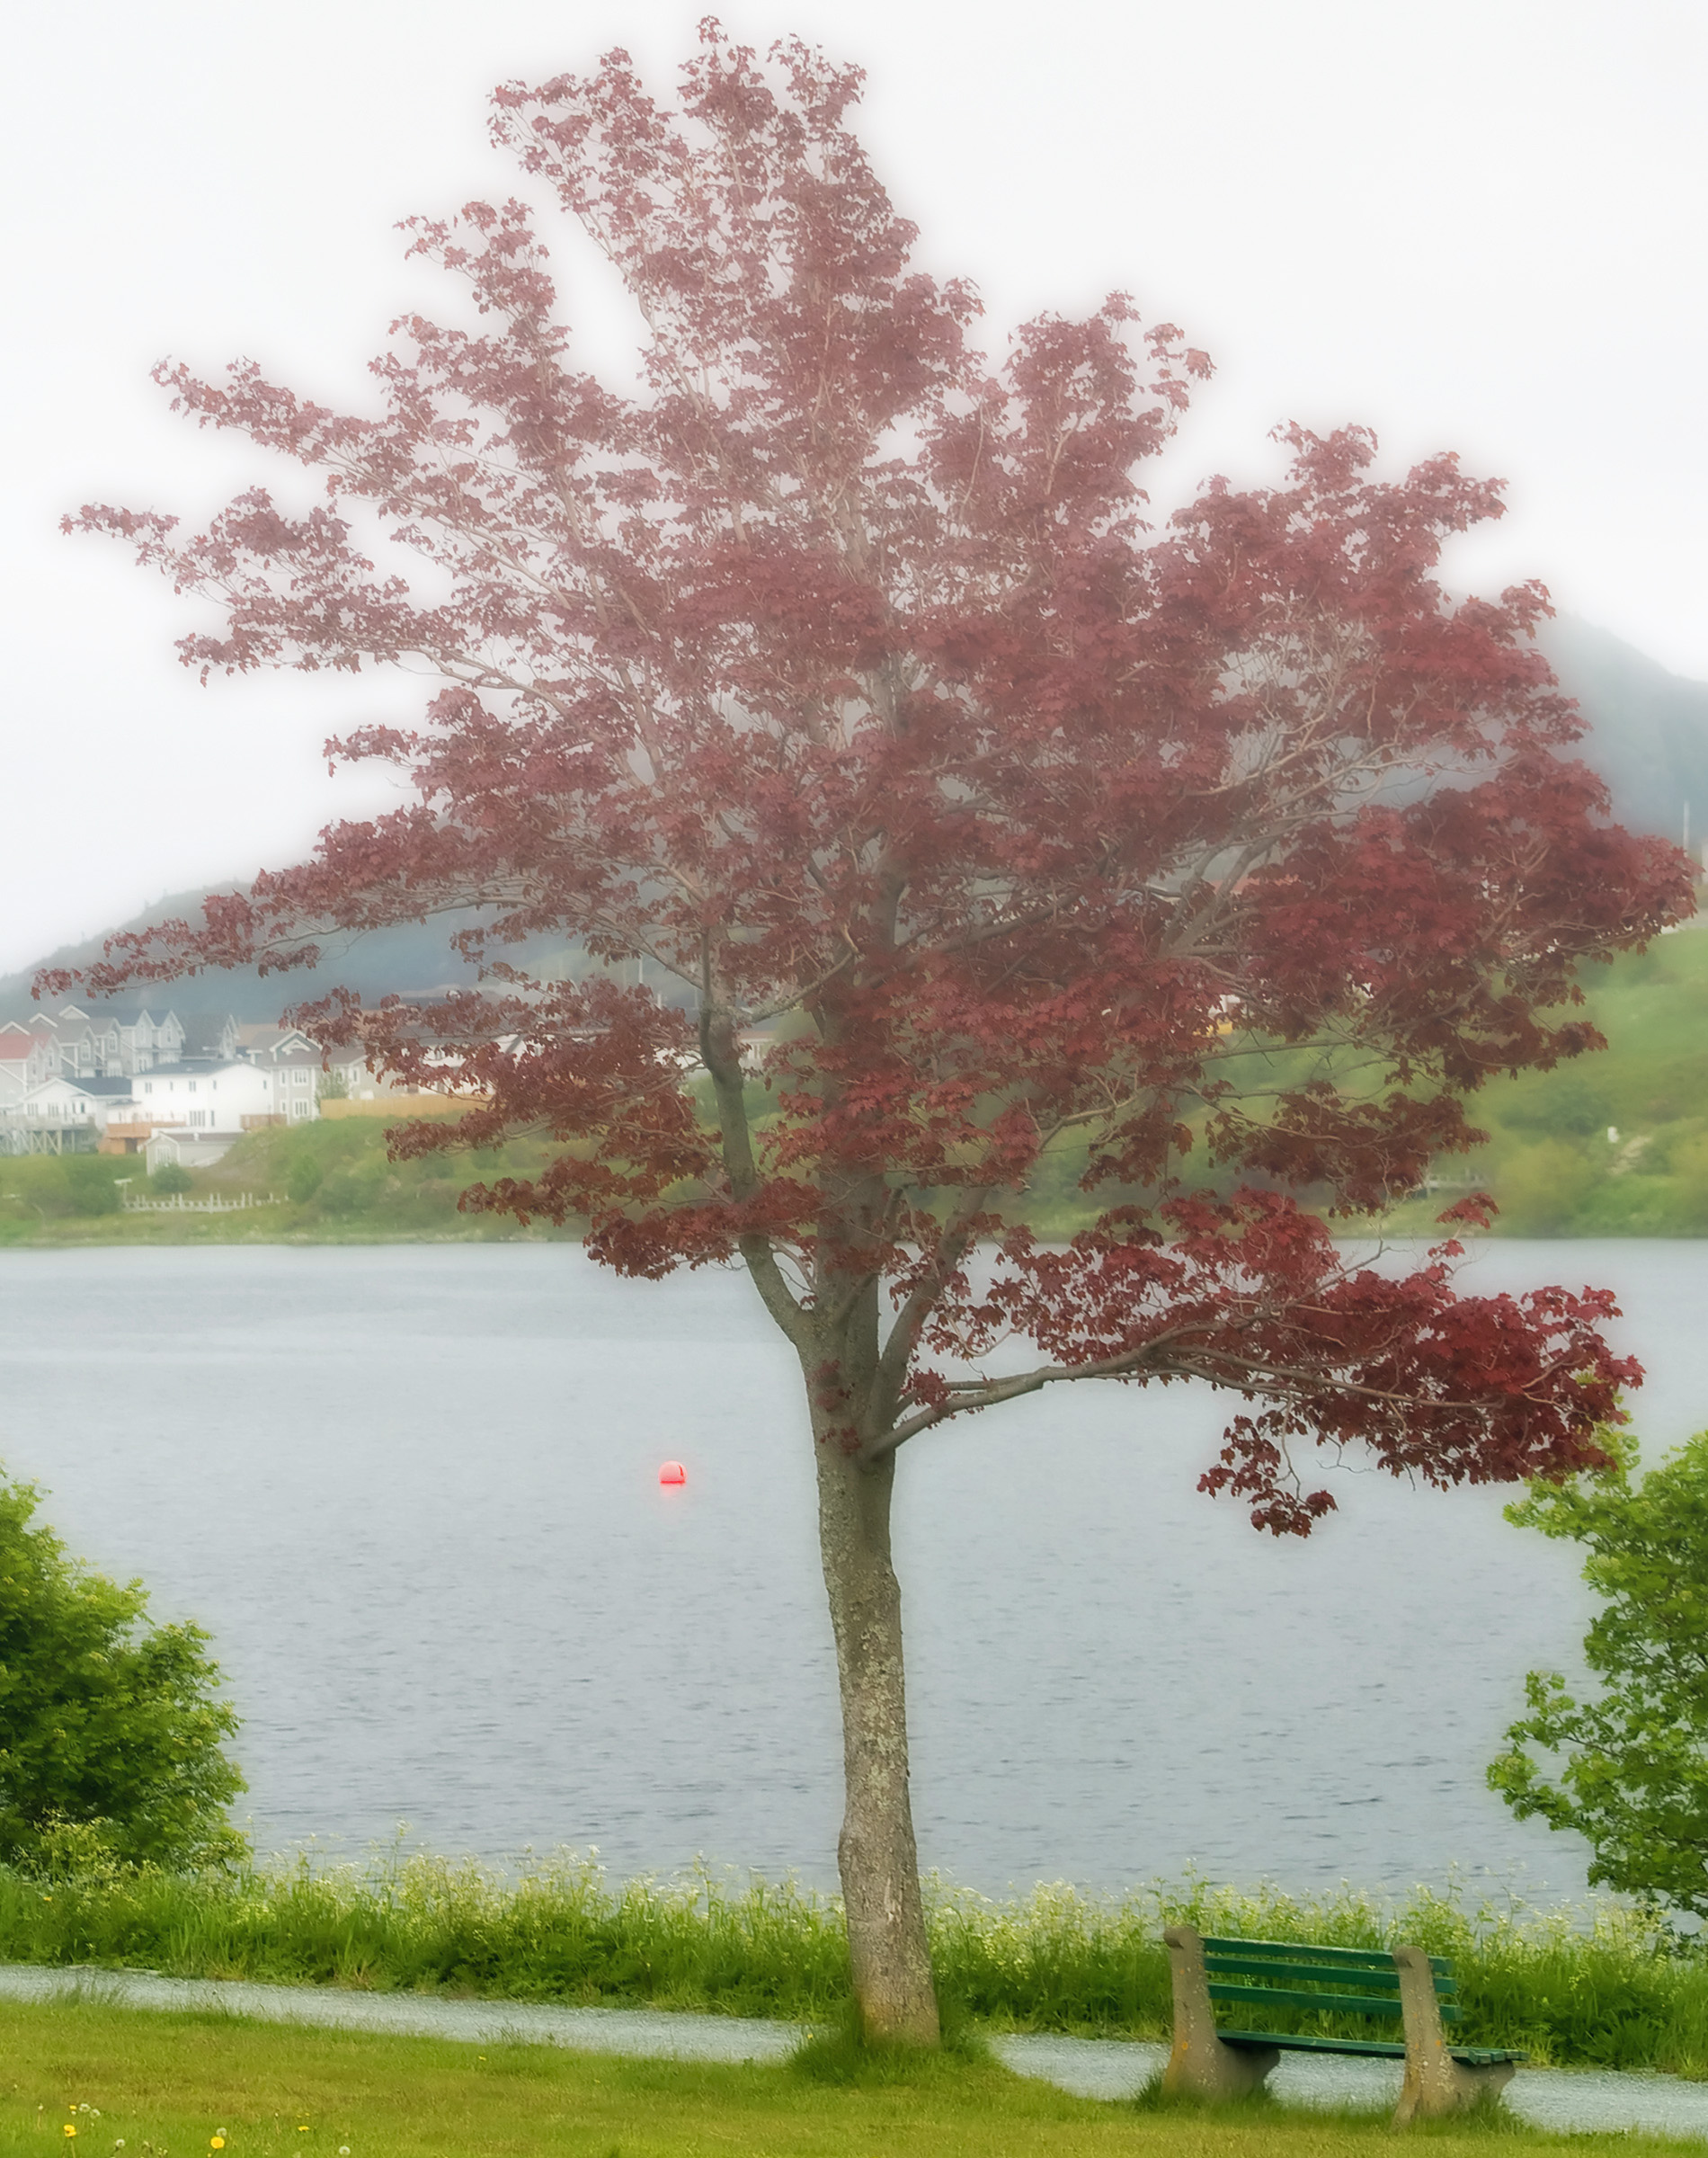 Red Maple, Beauty, Walk, Tree, Trail, HQ Photo